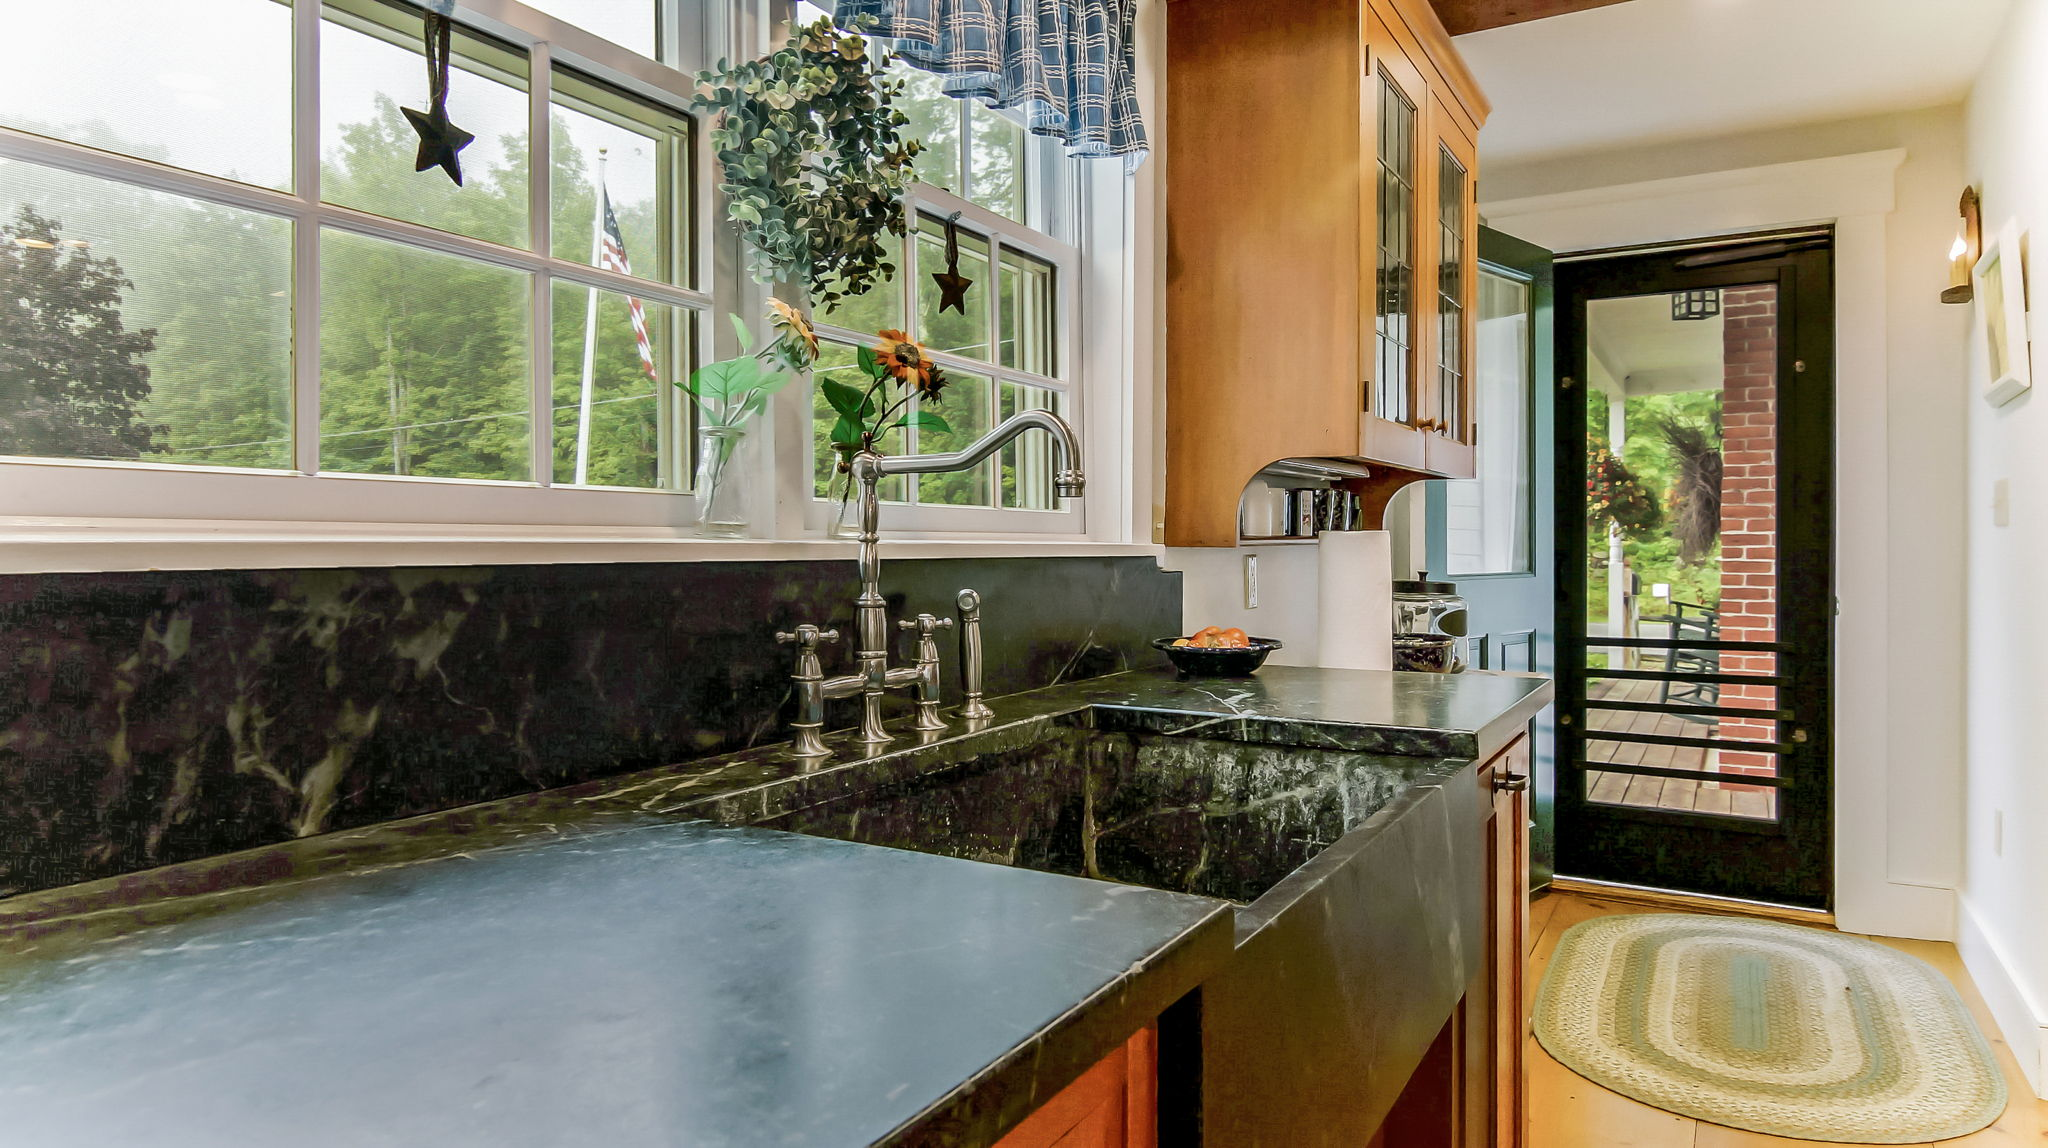 Traditional Soapstone Counter and Farm Sink